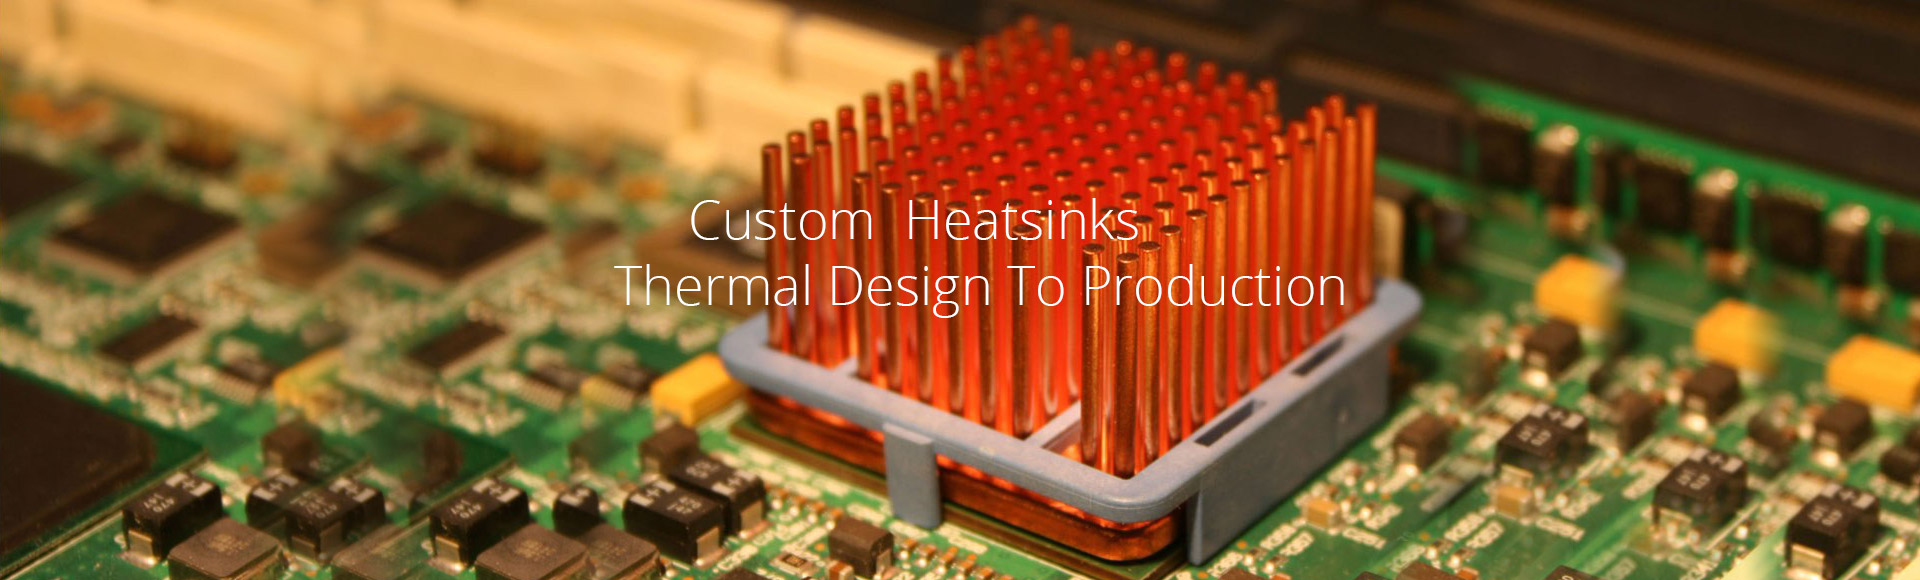 custom heatsinks